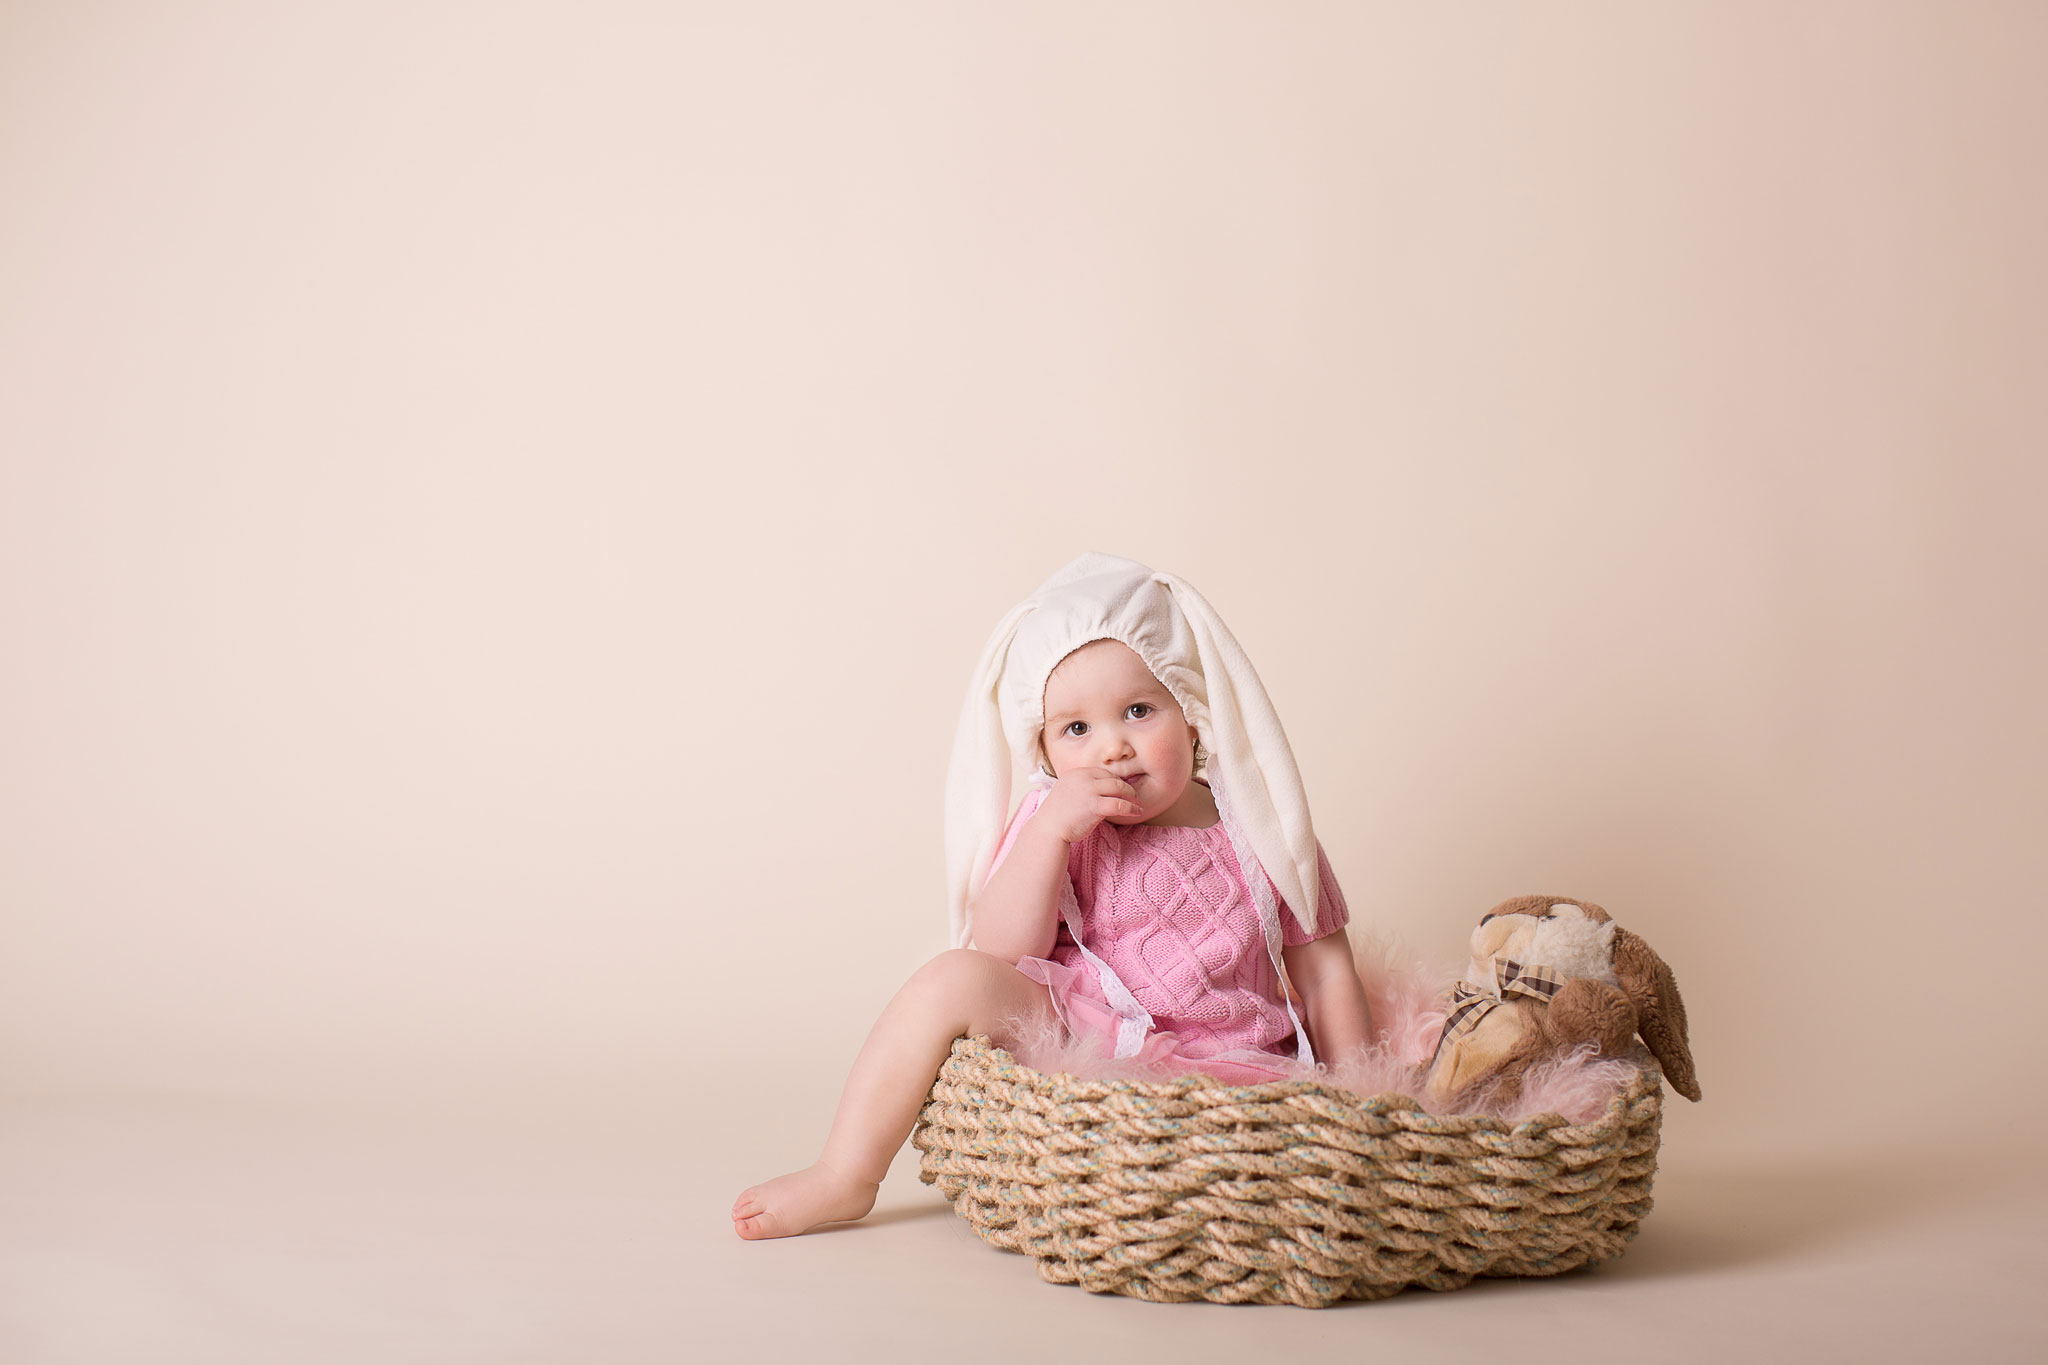 Girl wearing bunny hat with ears sitting in the basket